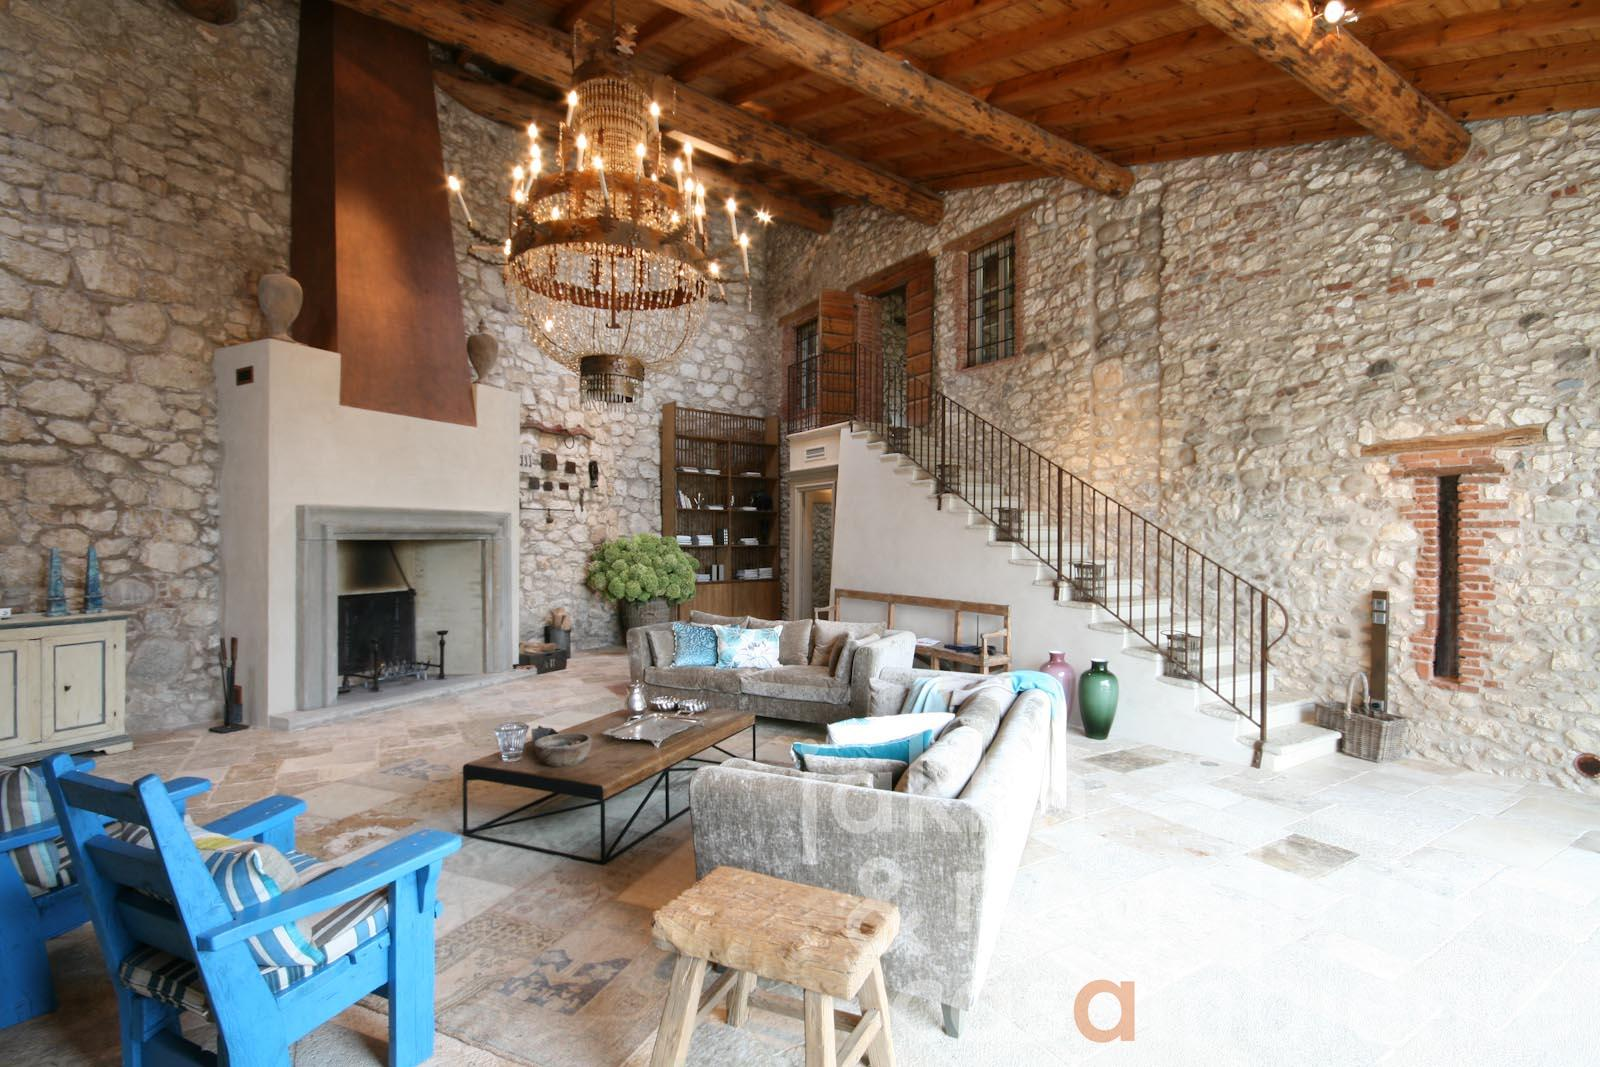 Country Estate For Sale In Italy Venetia Verona High